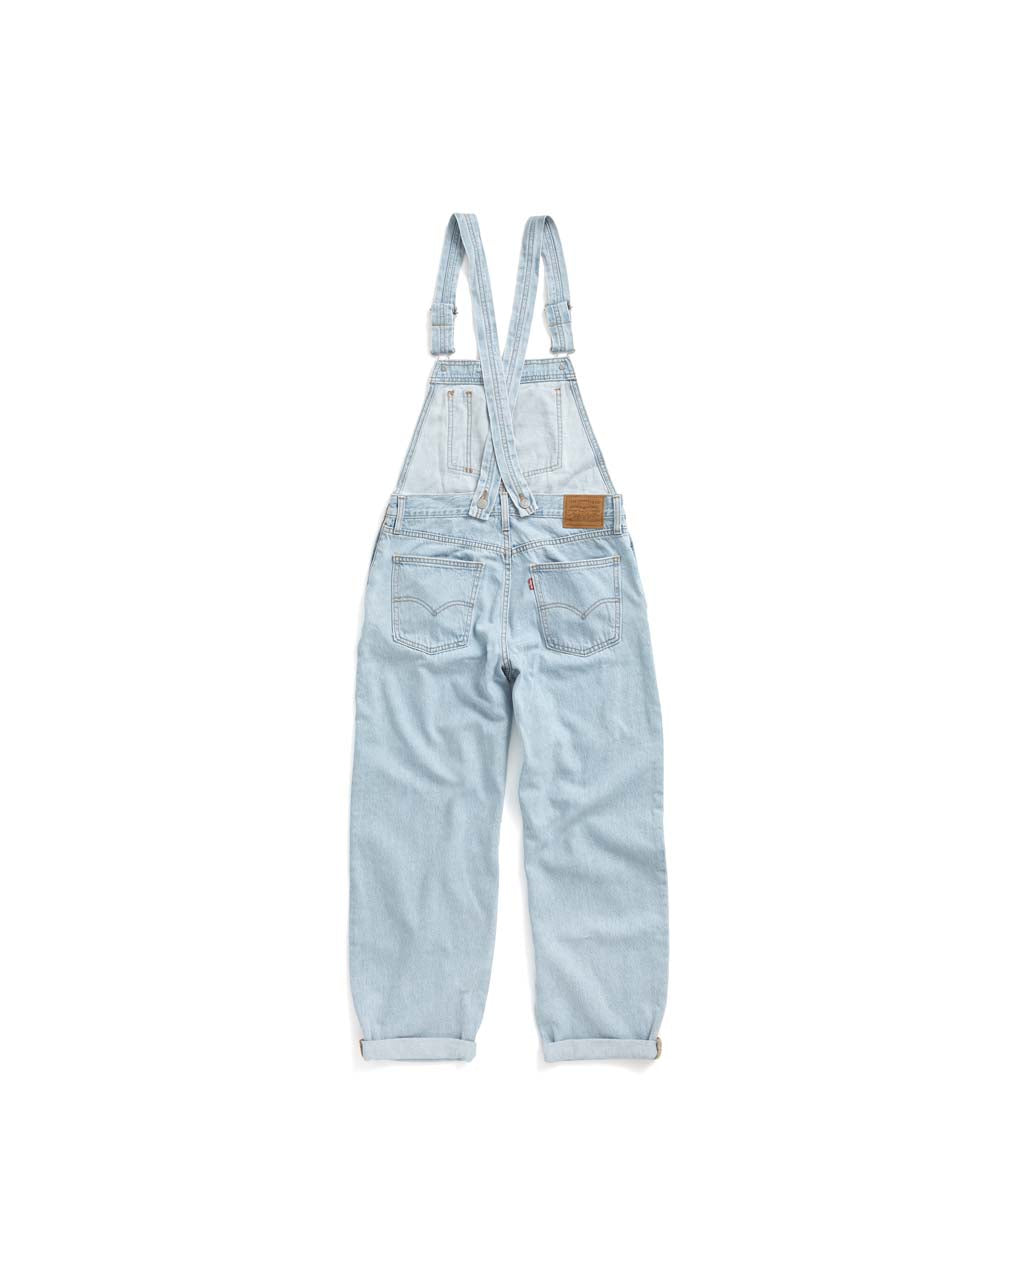 These light wash Levi's are one of our most popular items.